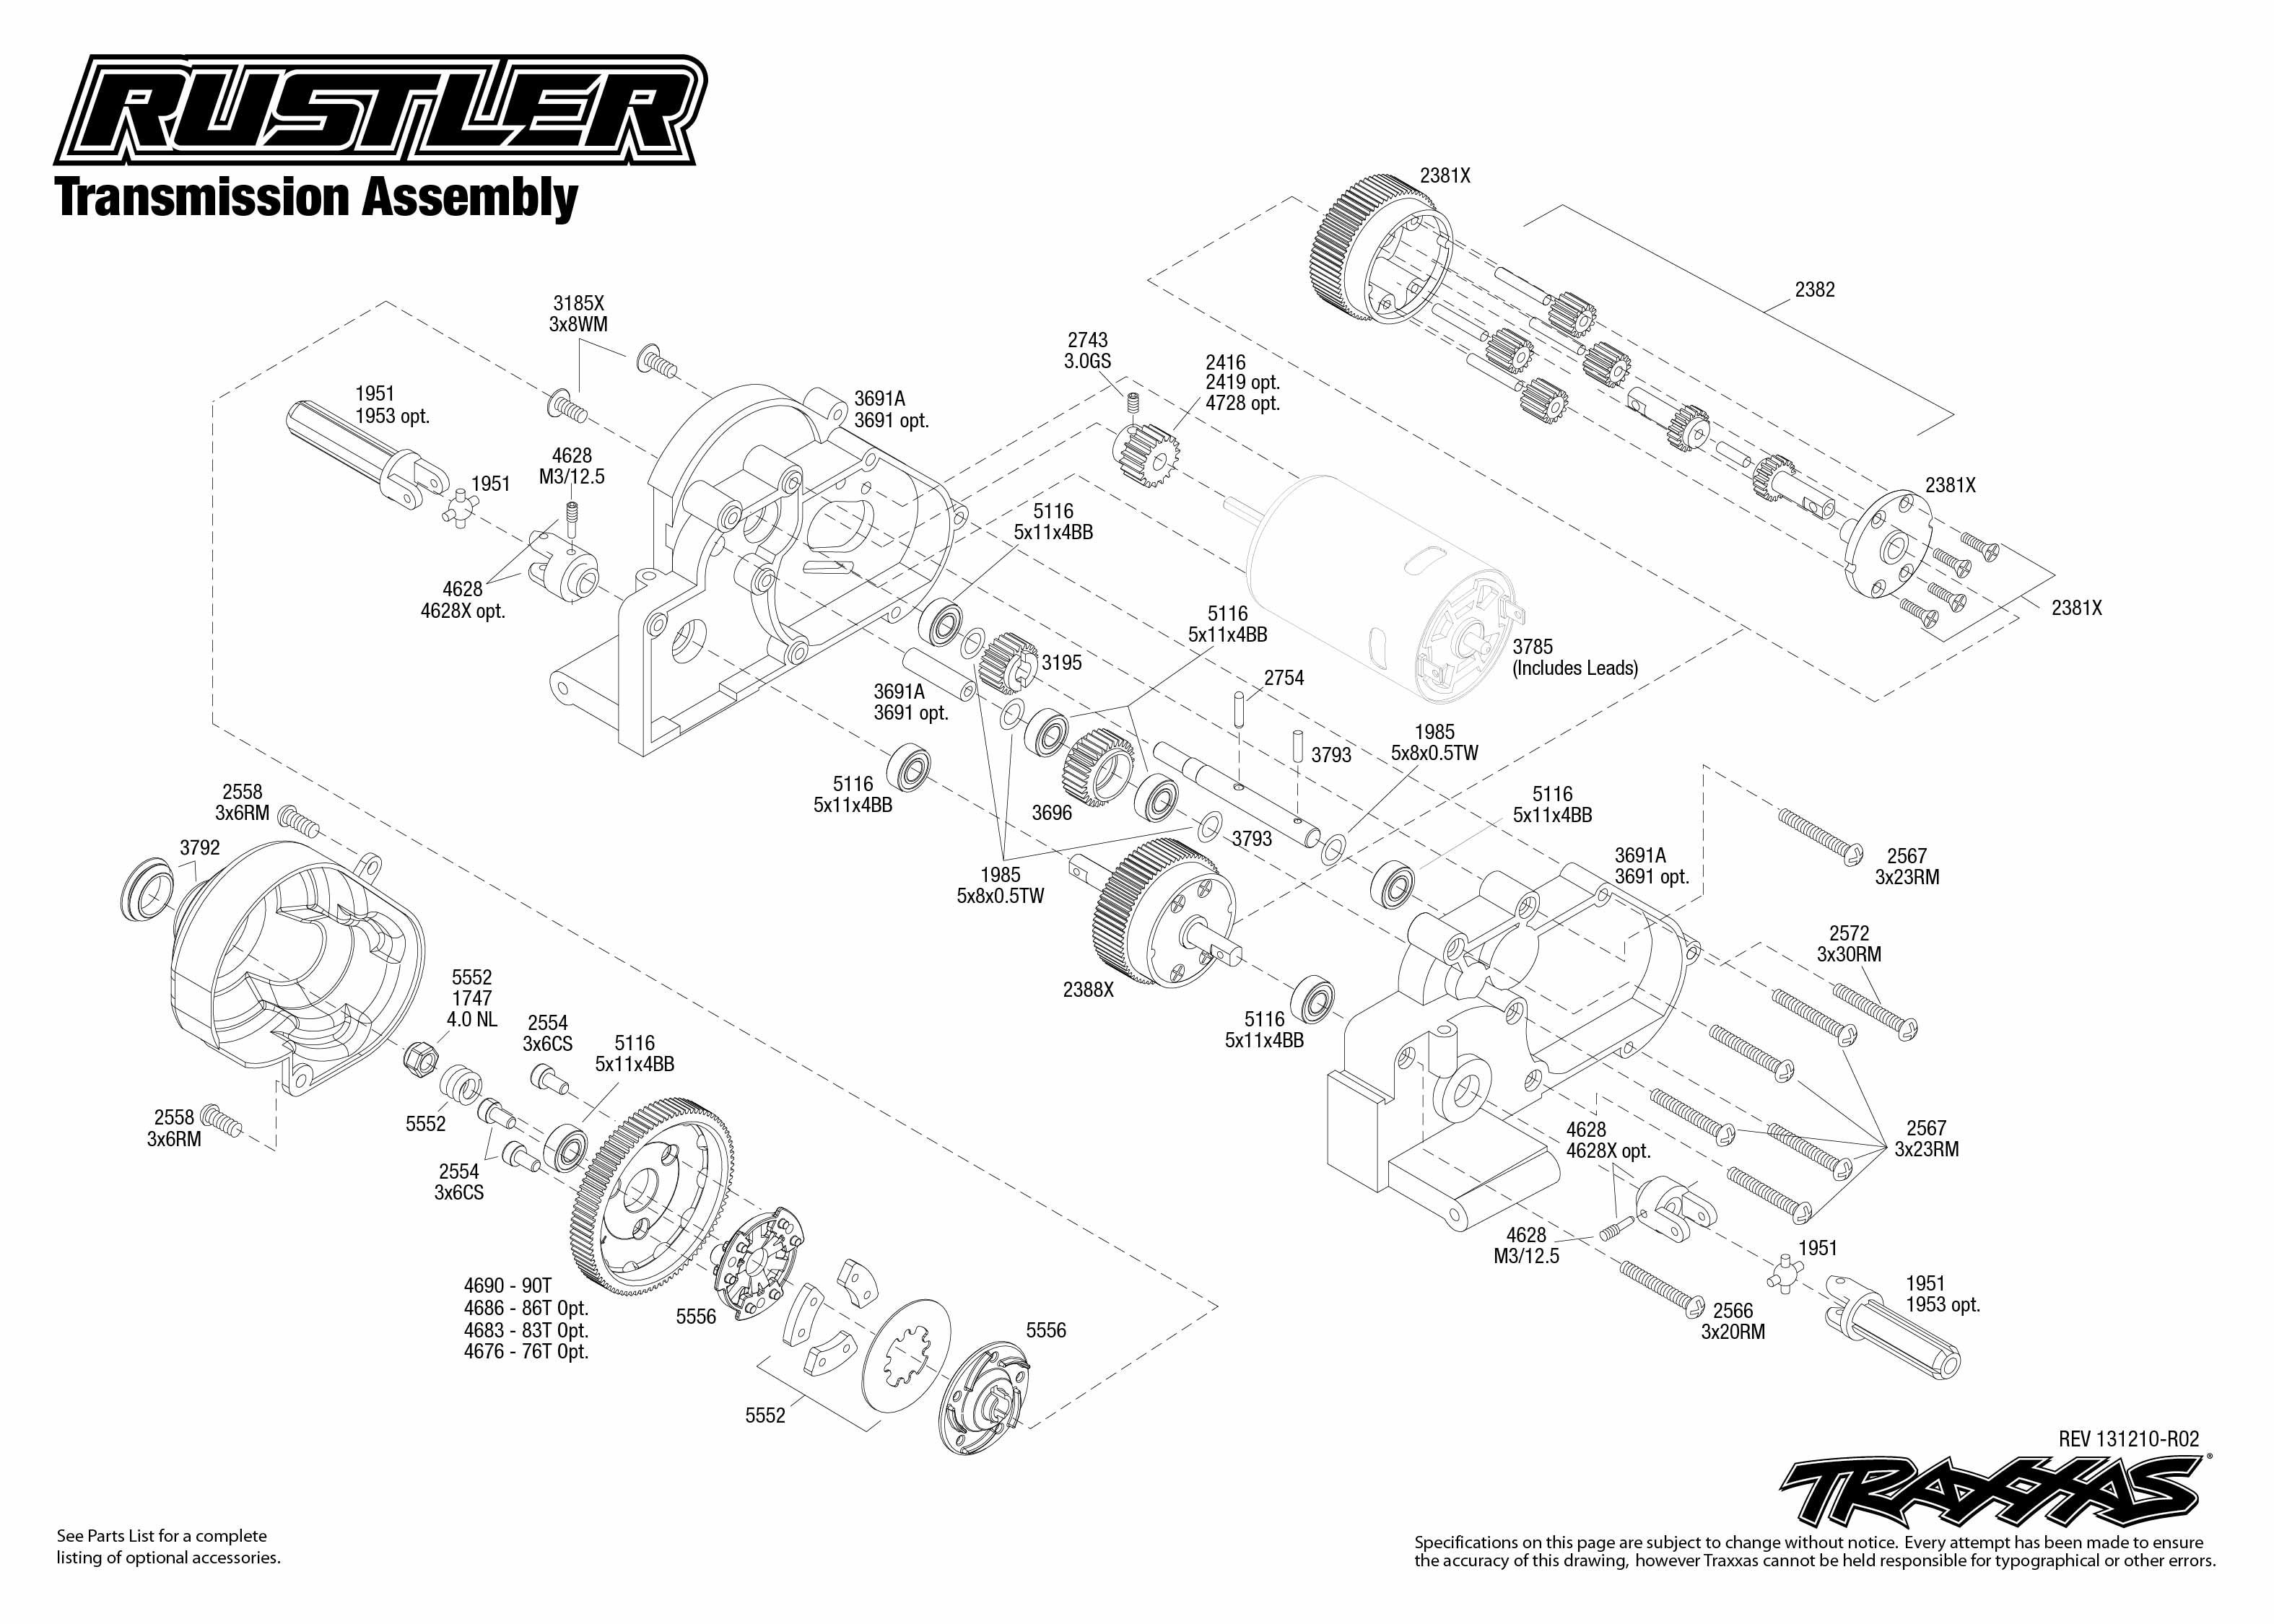 hight resolution of image result for traxxas rustler parts diagram rc cars traxxas rustler diagram